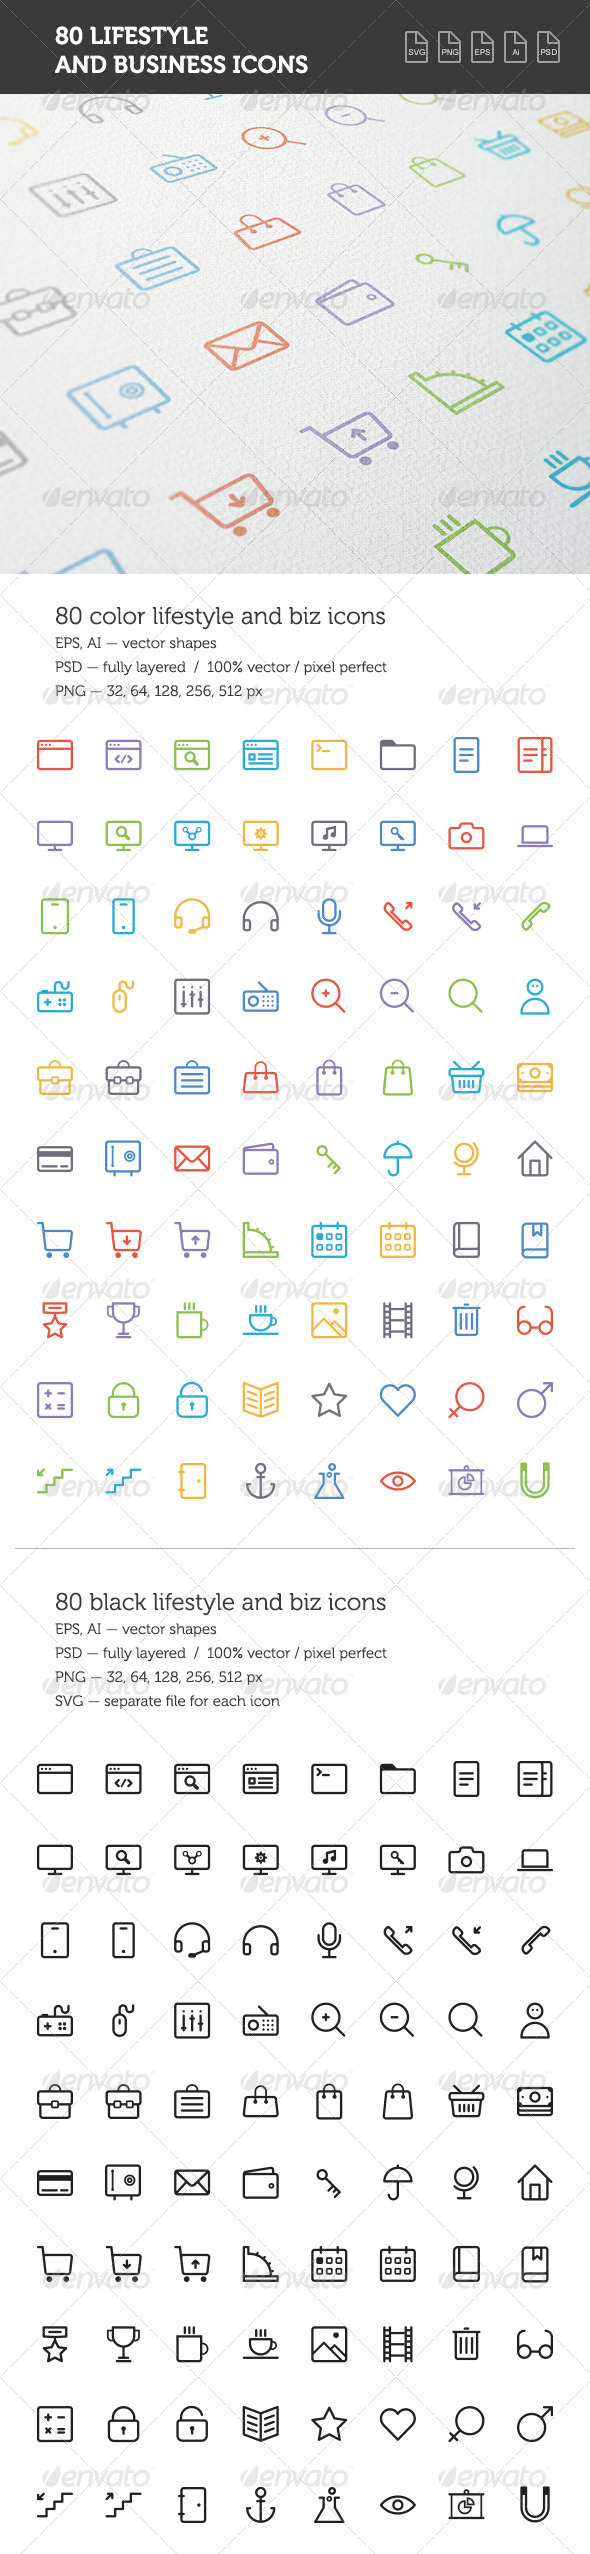 Lifestyle and Business Icon Set